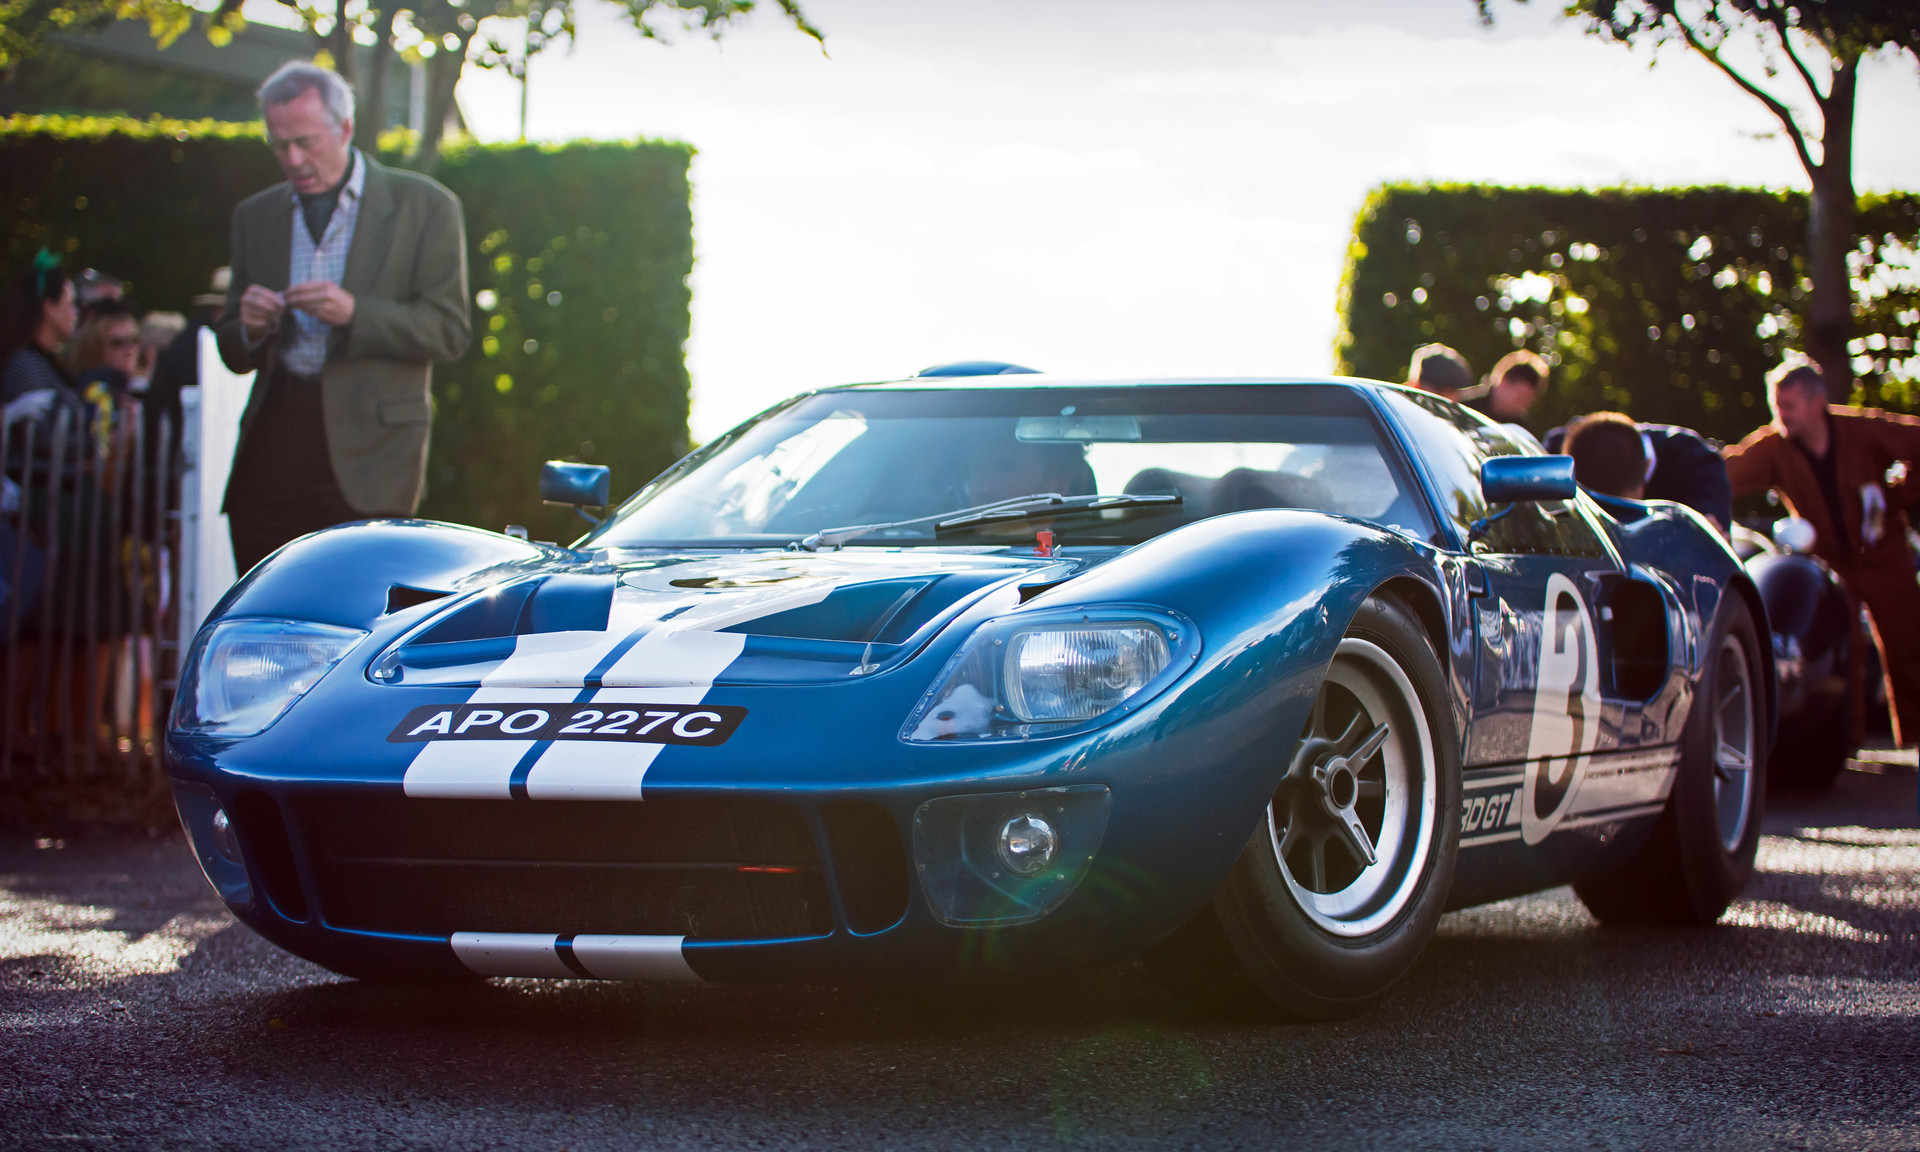 Christopher Wilson's 1965 Ford GT40 at the 2017 Goodwood Revival